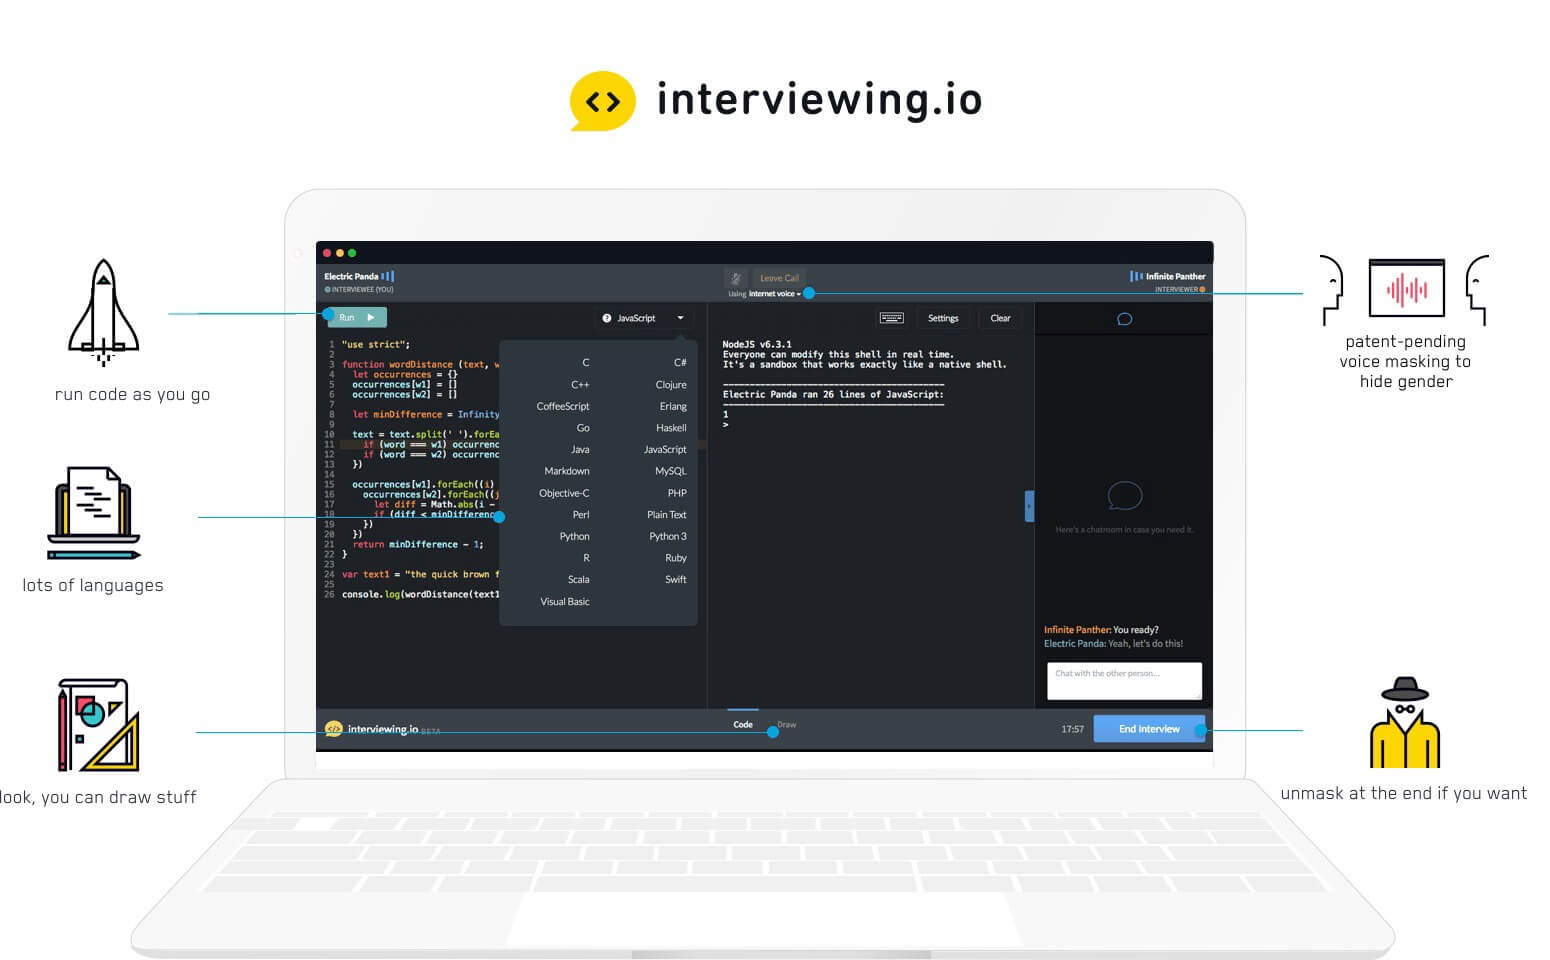 Posts Nushackers Circuit Tracker And Breaker Finder Testers Amazon A Great Resource For Practicing Mock Coding Interviews Would Be Interviewingio Provides Free Anonymous Practice Technical With